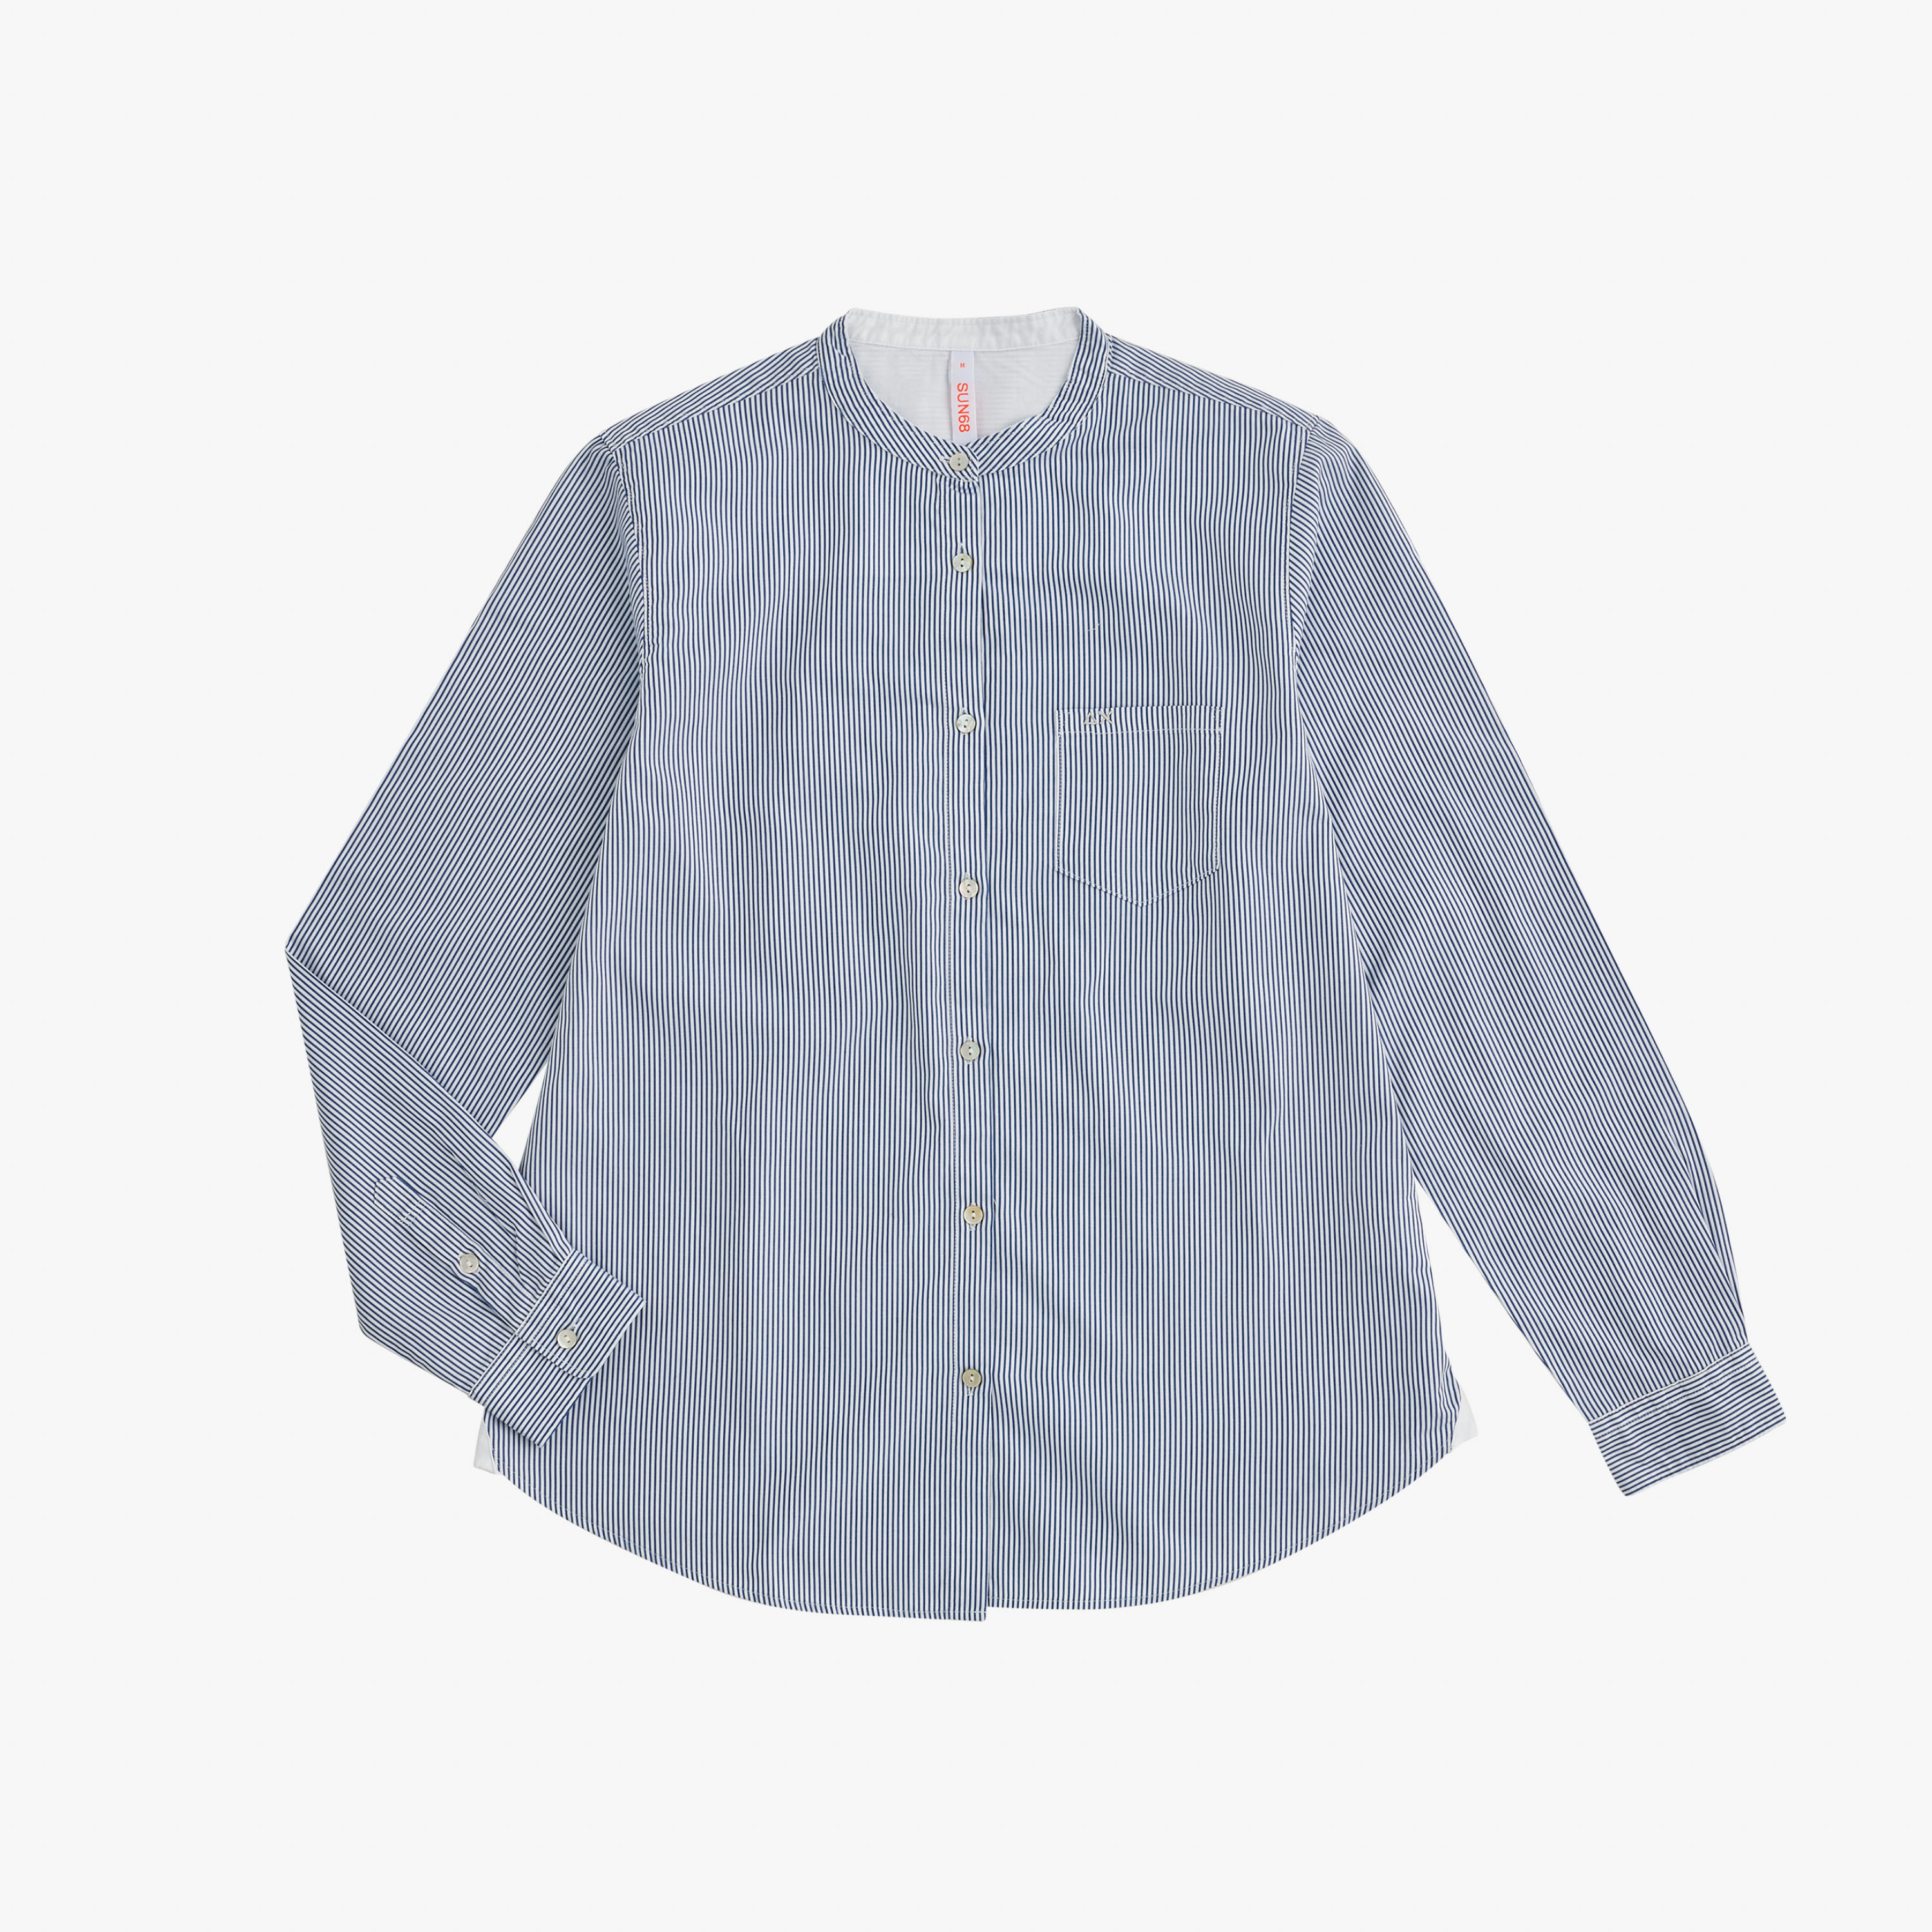 SHIRT KOREA COLLAR L/S NAVY BLUE/BIANCO